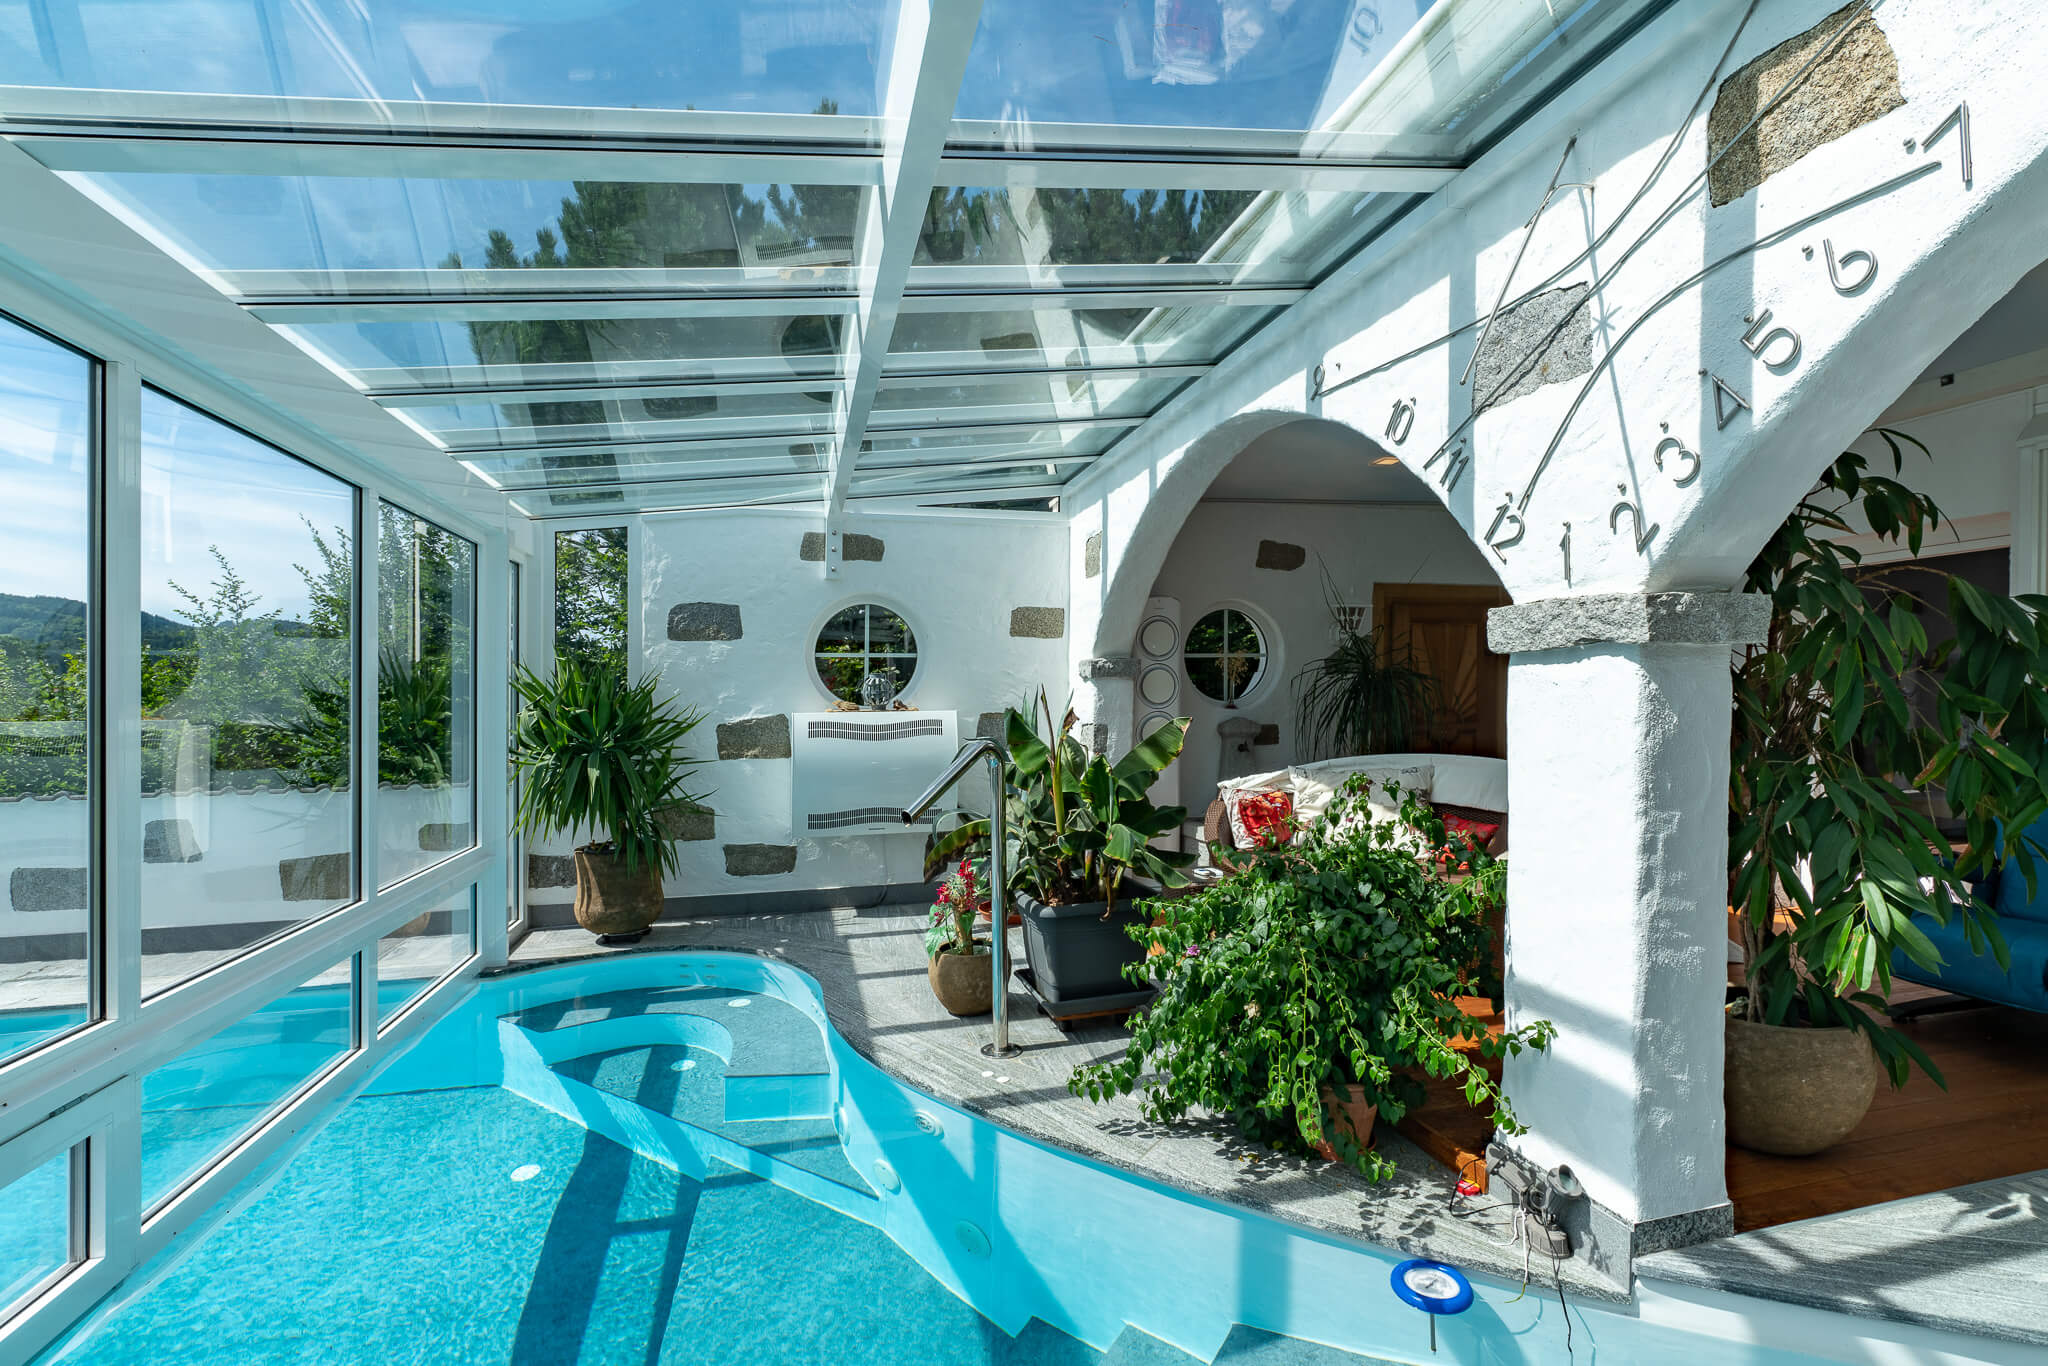 Wintergarten mit Indoor Pool